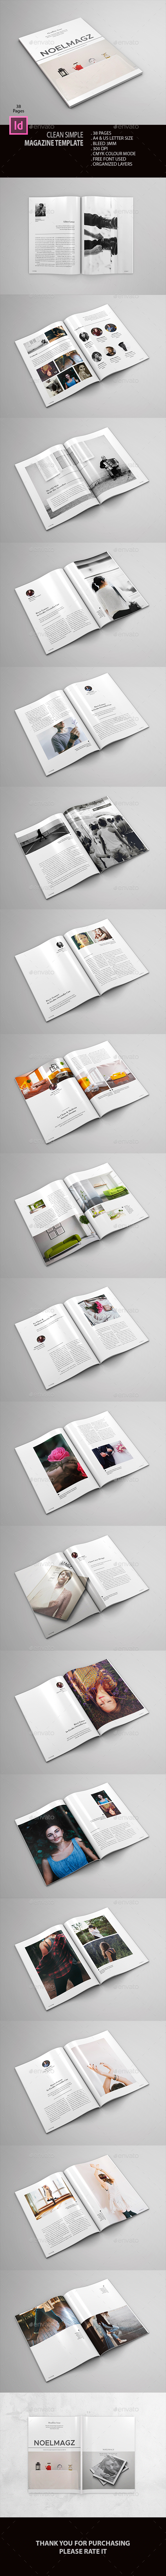 Clean Simple Magazine - Magazines Print Templates